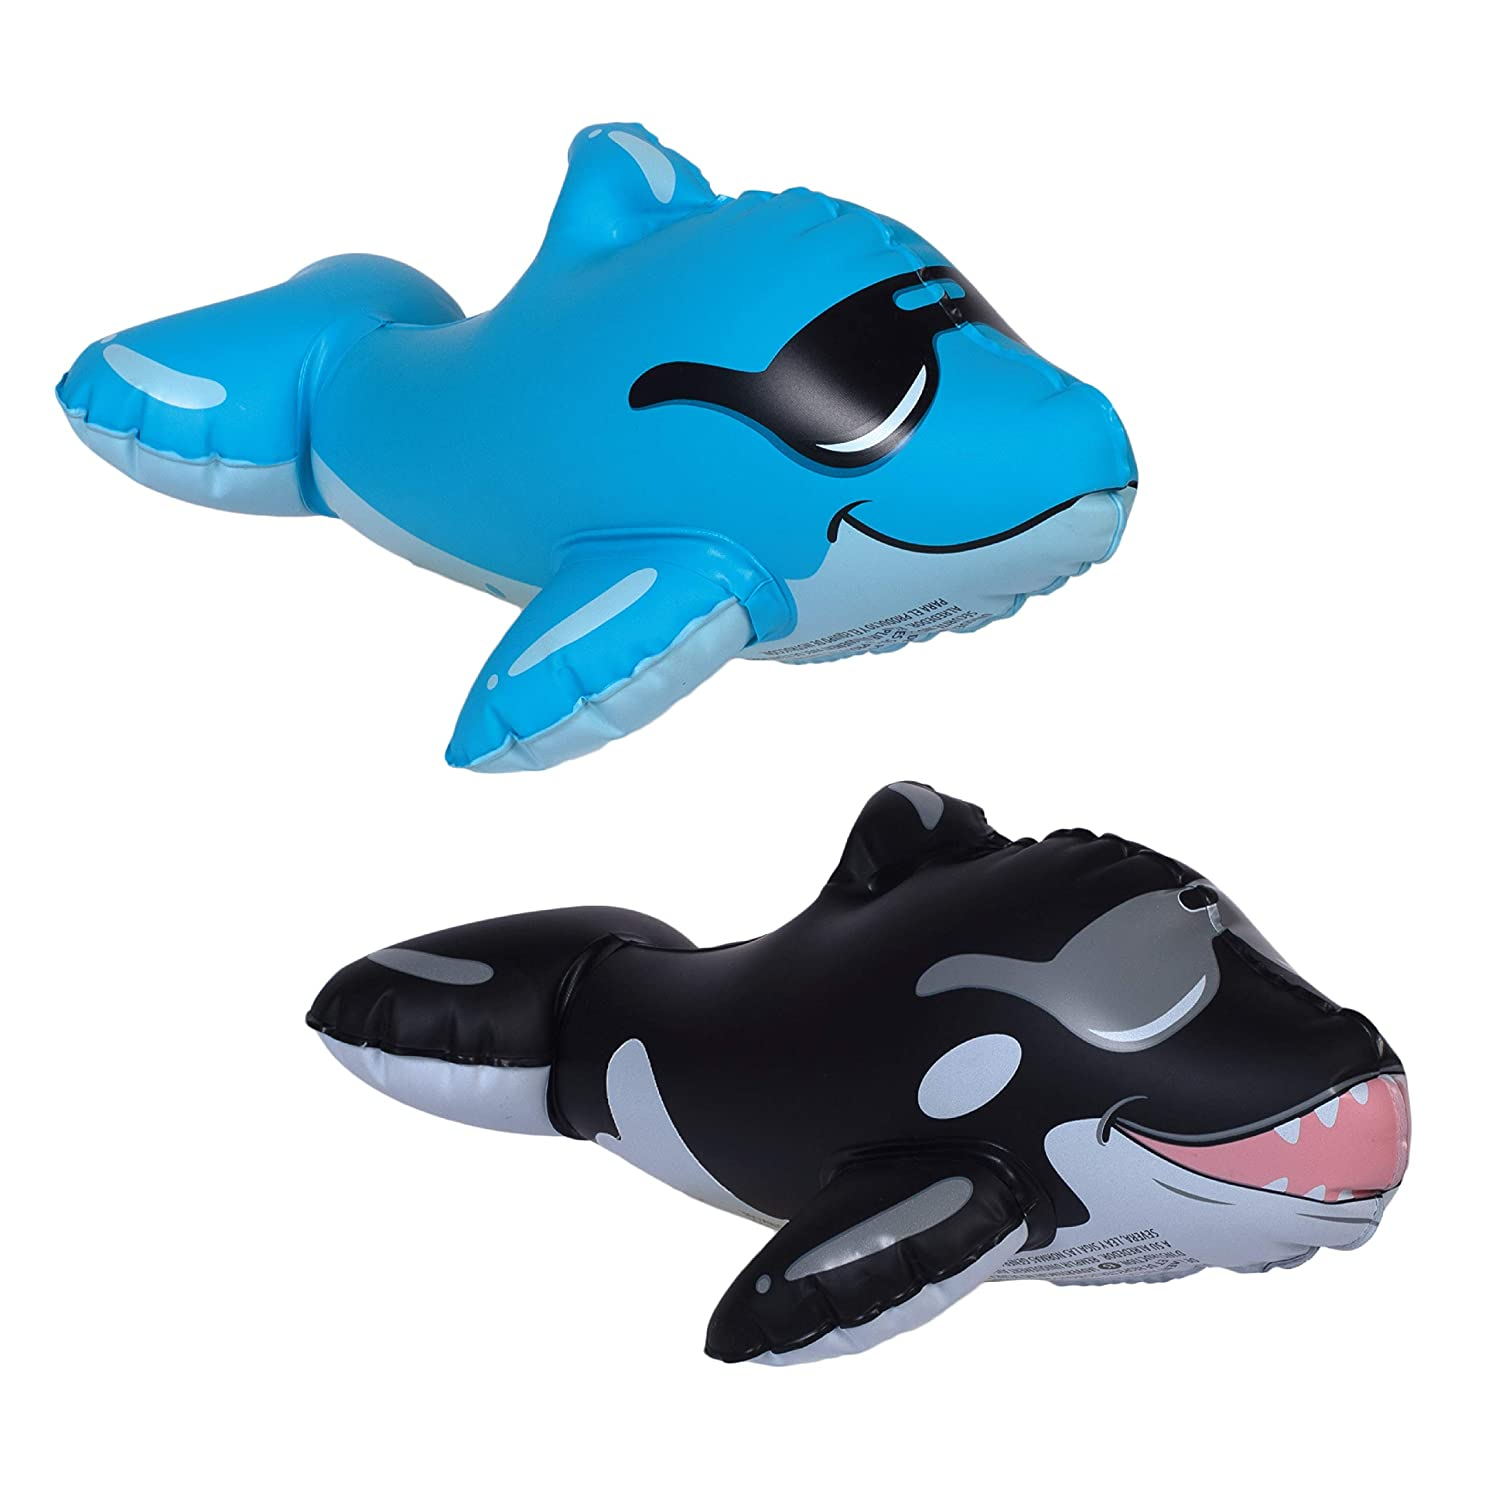 GAME 55303-BB SwimPals Water-Filled Pool Toys Dolphin Ages 6 /& Up Mermaid Submarine Regular Shark